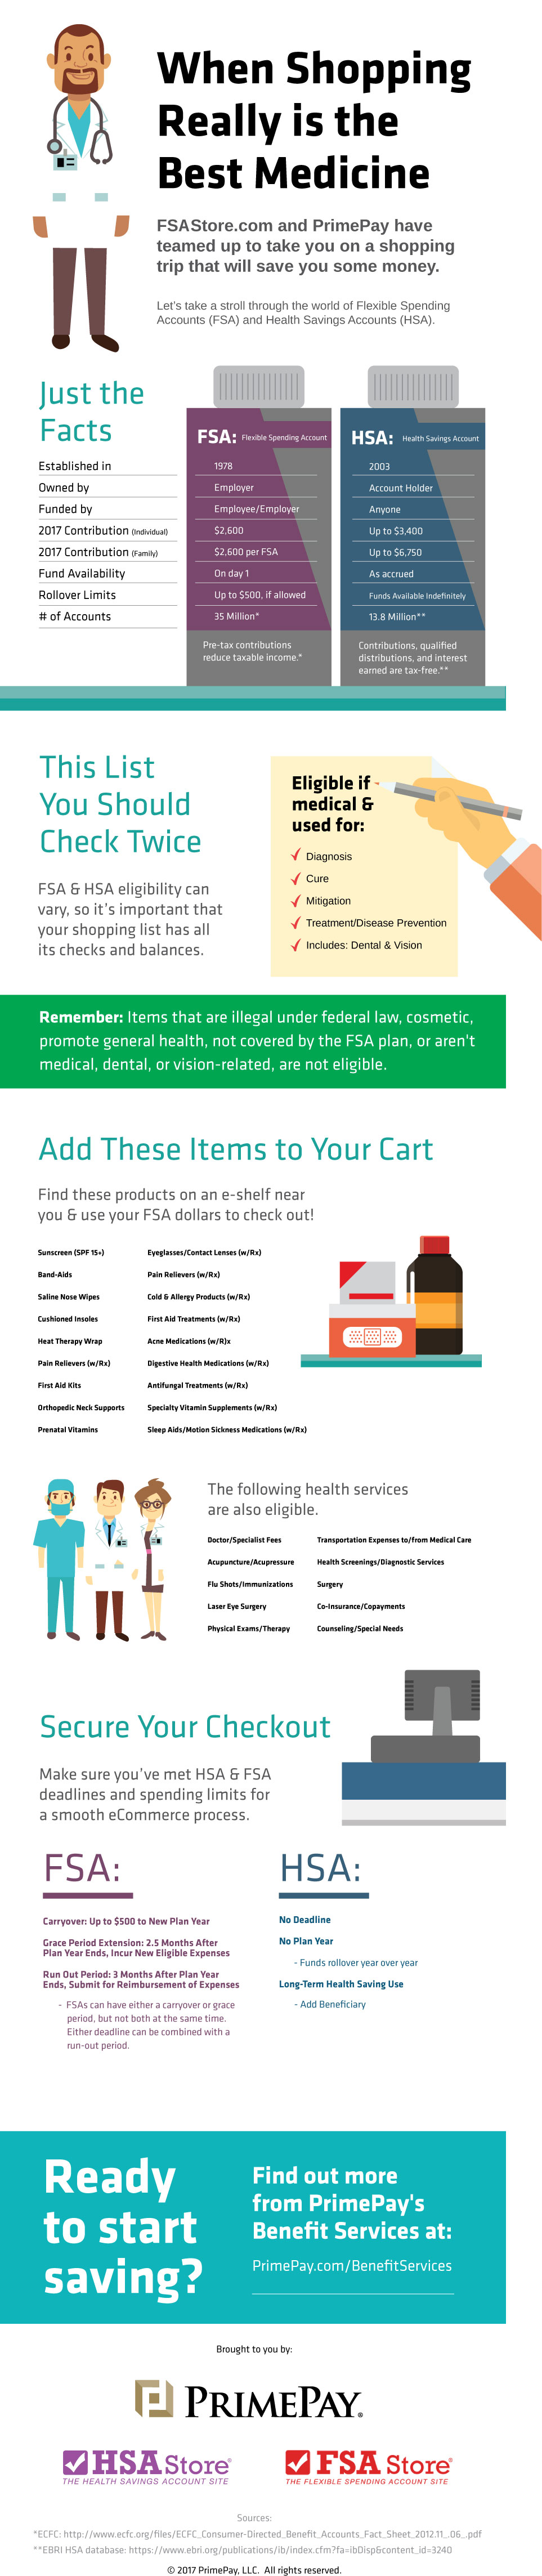 [Infographic] HSAs & FSAs: When Shopping is the Best Medicine